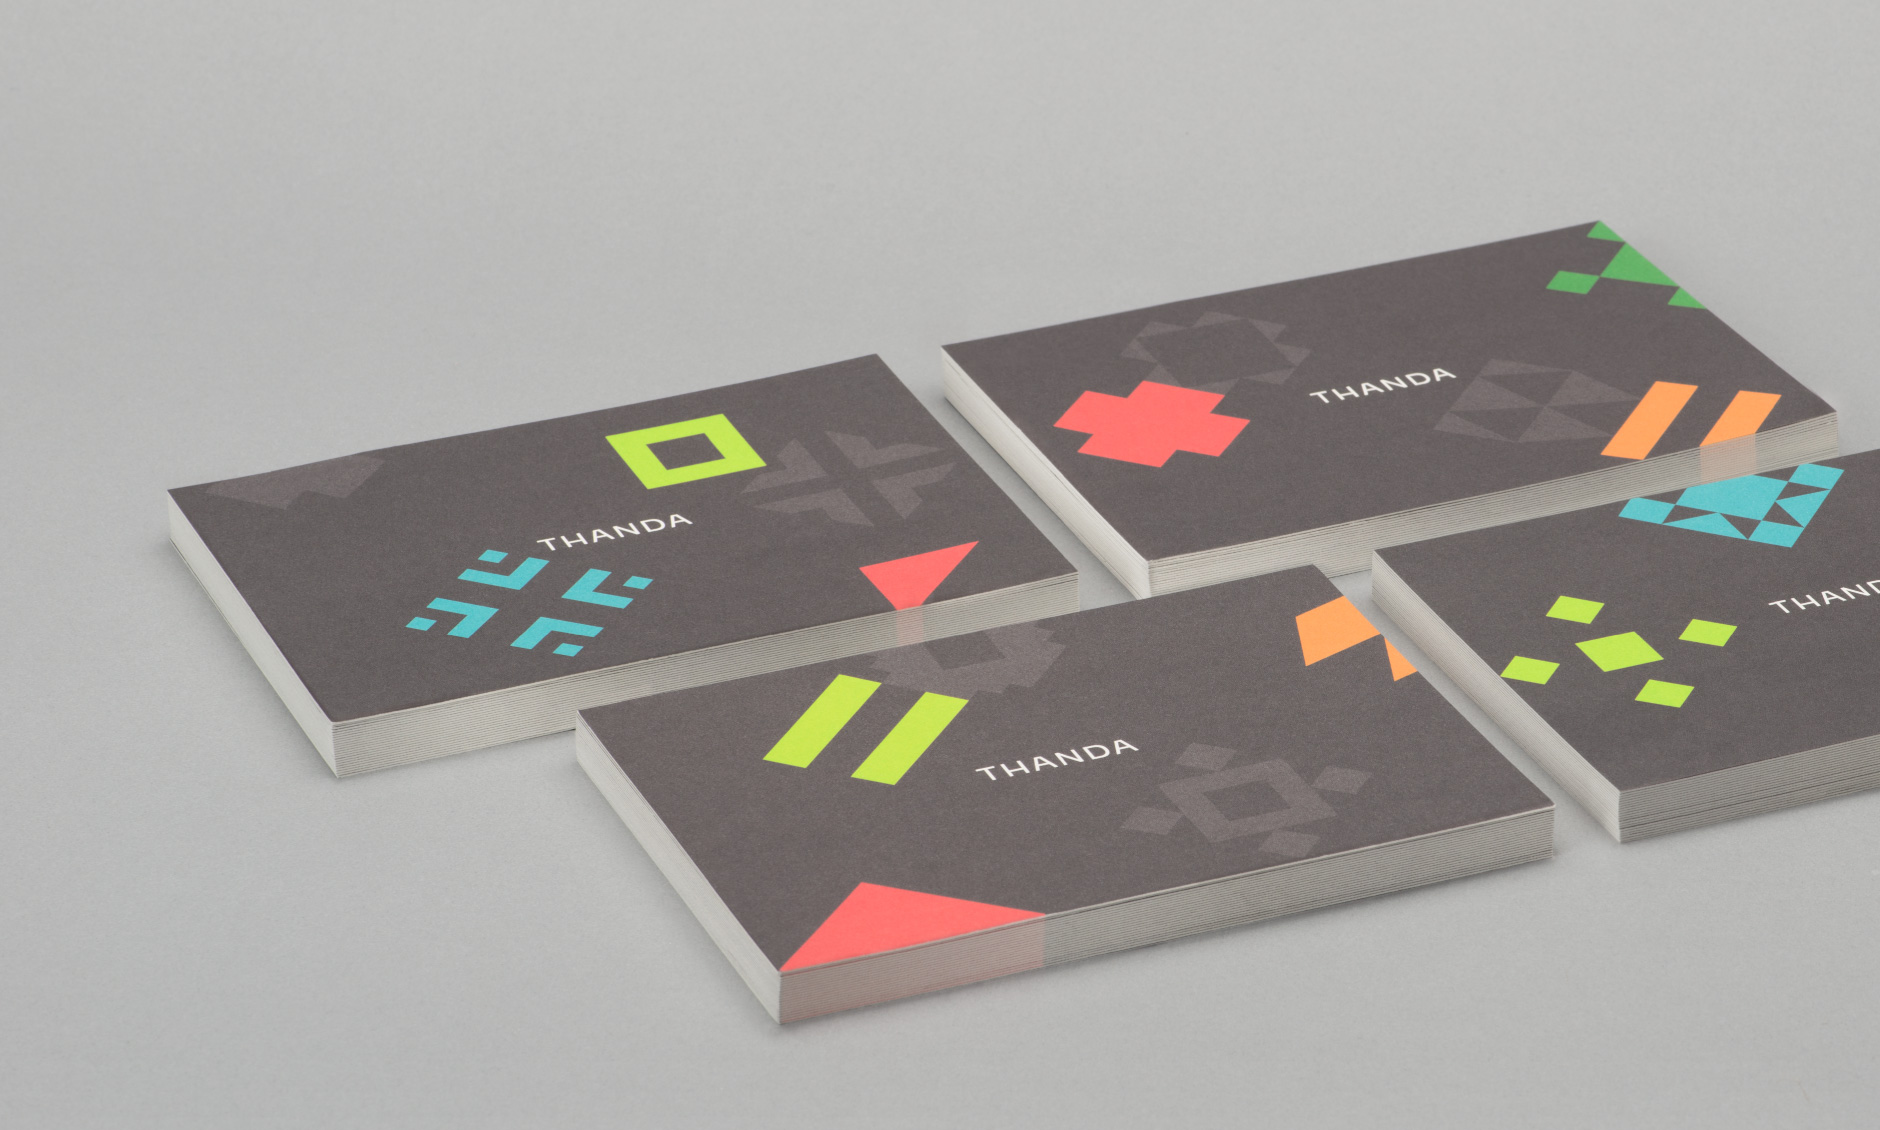 Thanda – designed by Karoshi